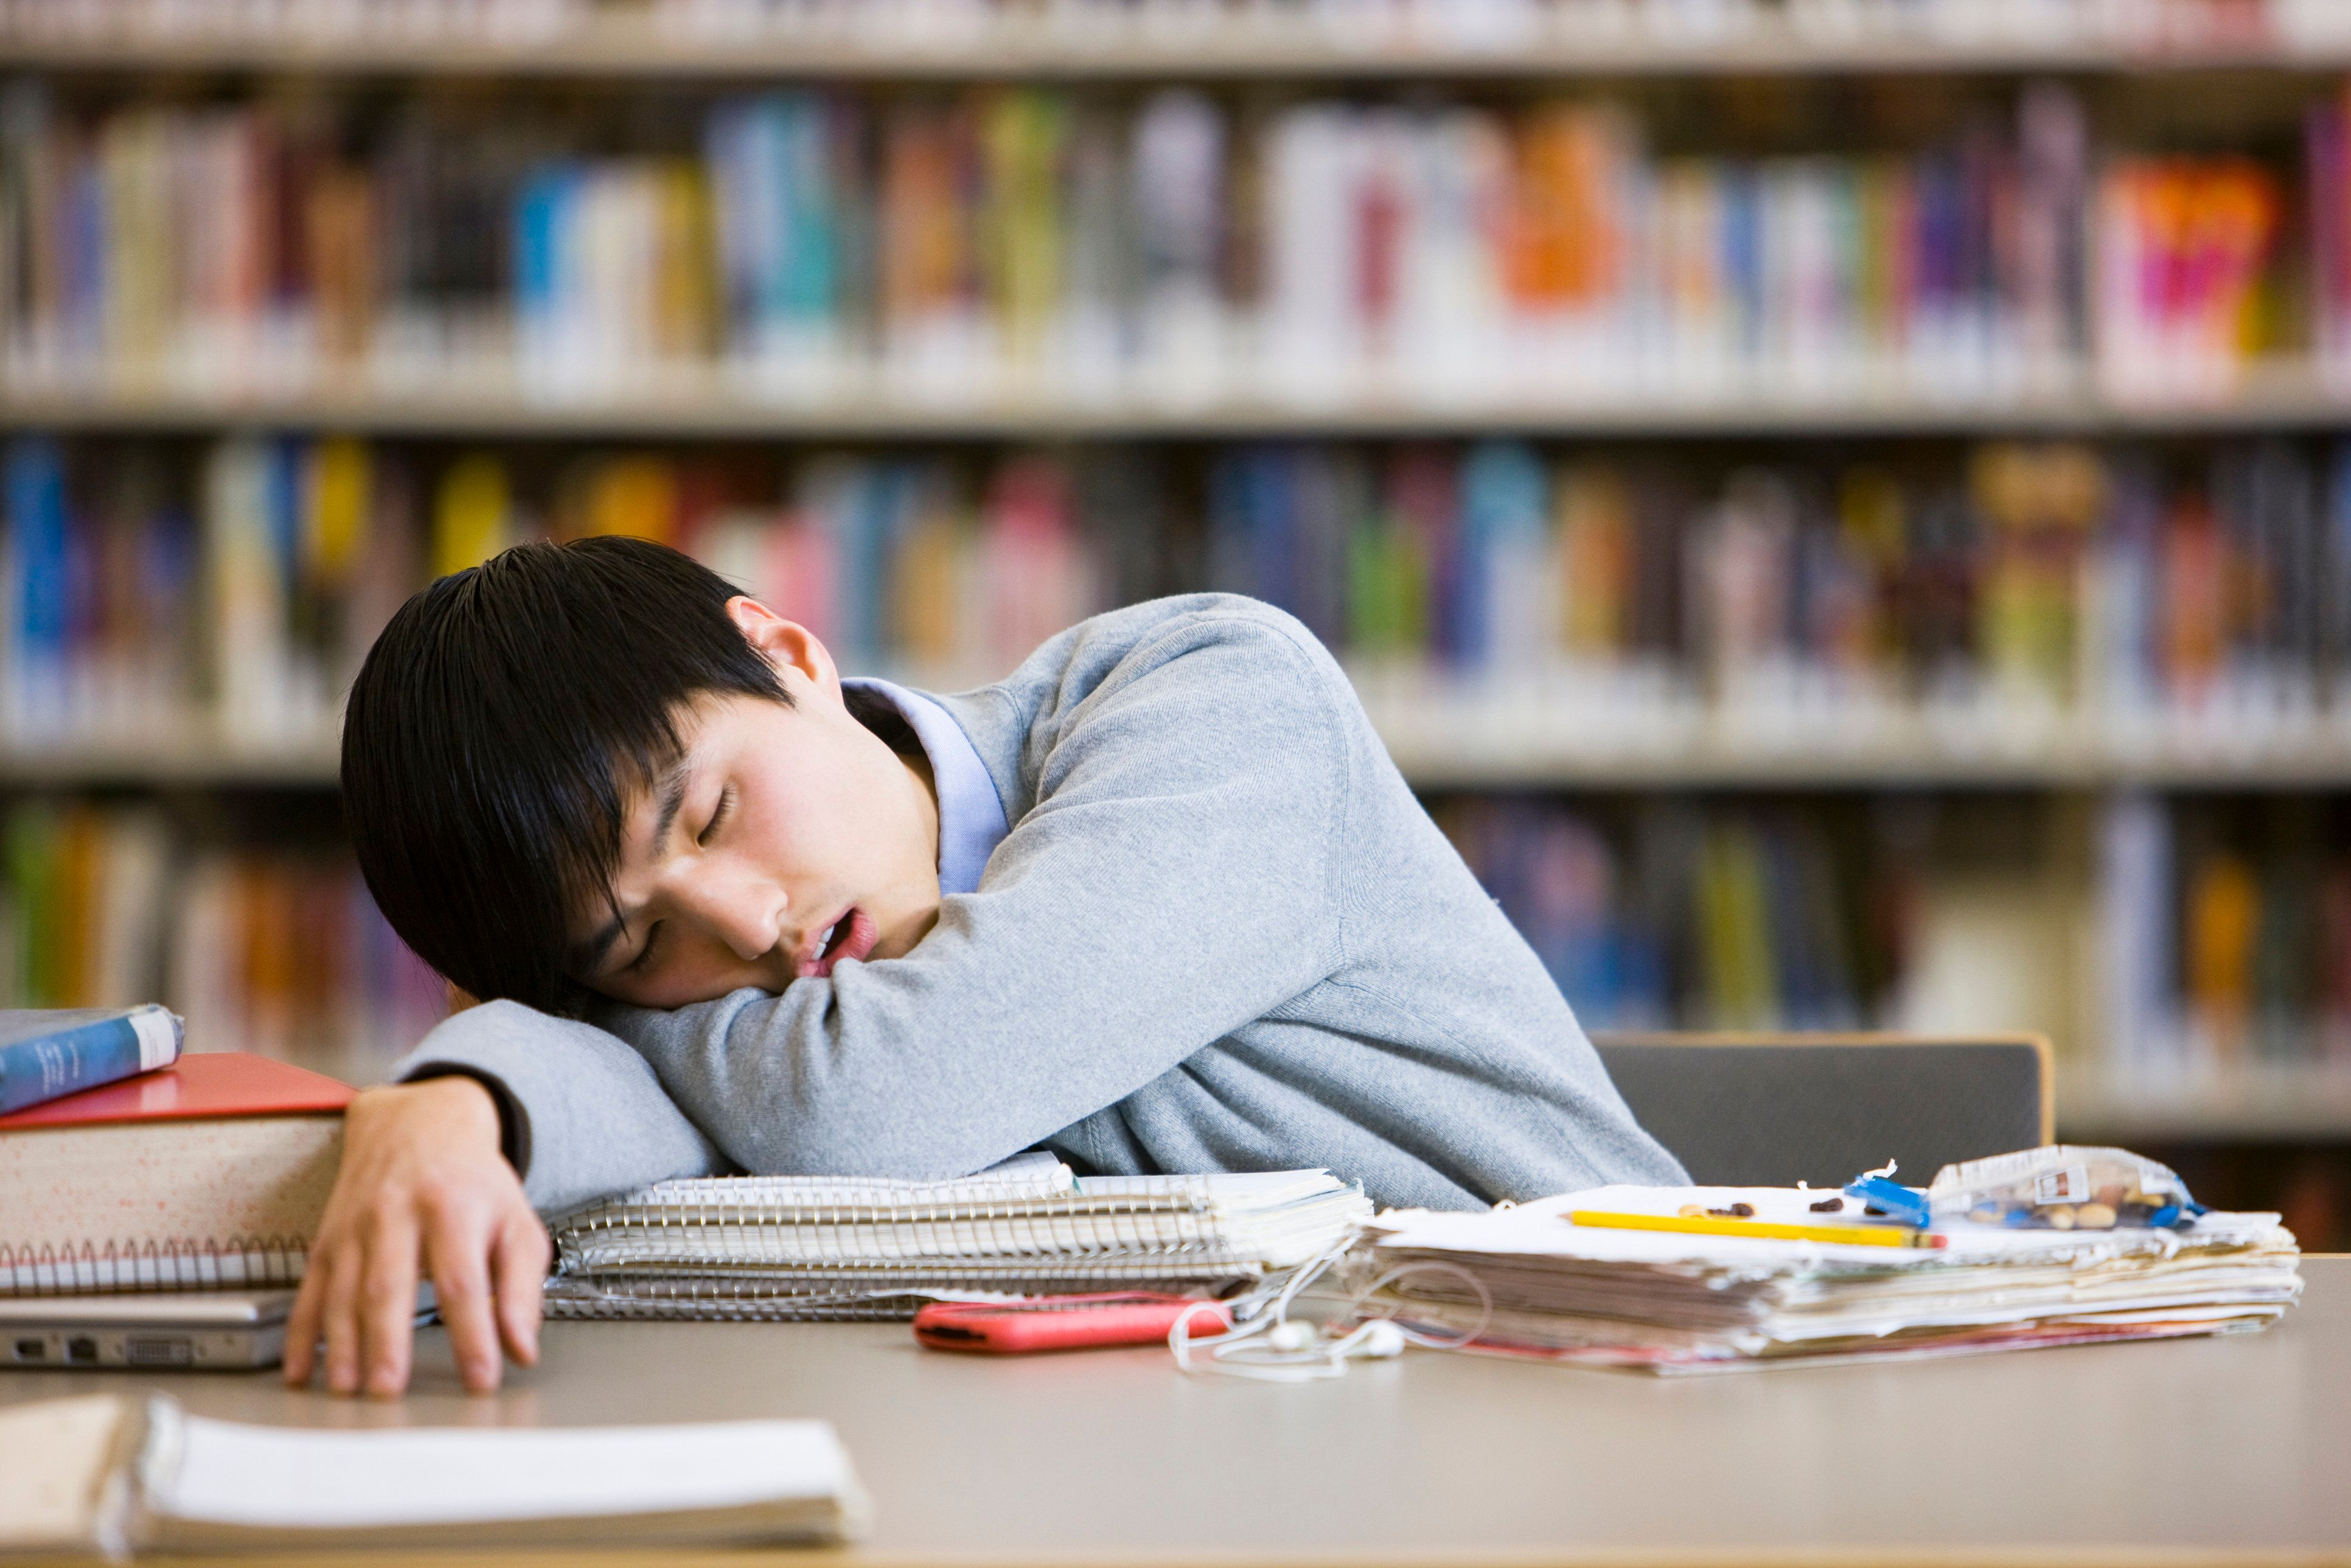 According to a 2014 study, over 90 percent of teens are chronically sleep-deprived.